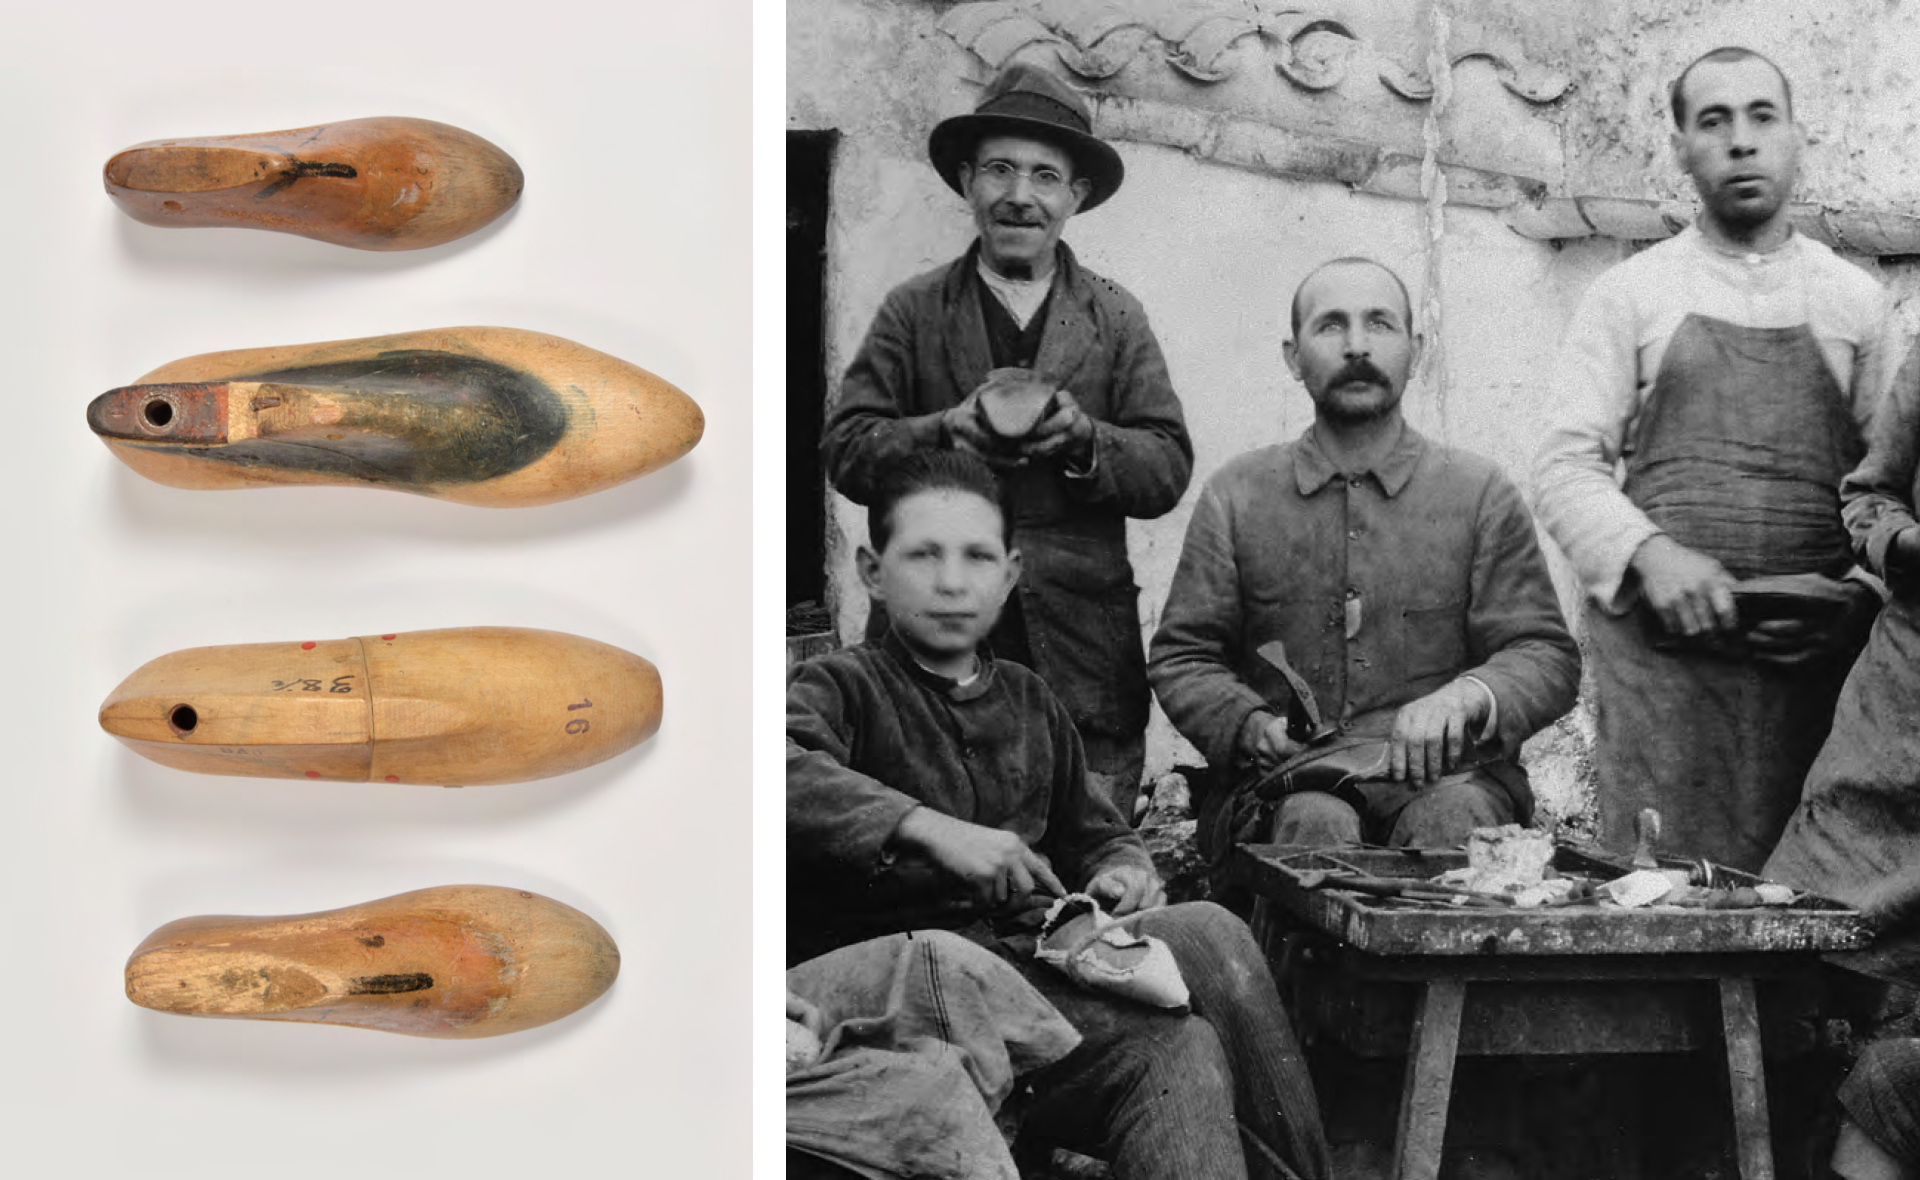 Original lasts from Mascaró, 1918; Pedro Mascaró and his team of shoemakers